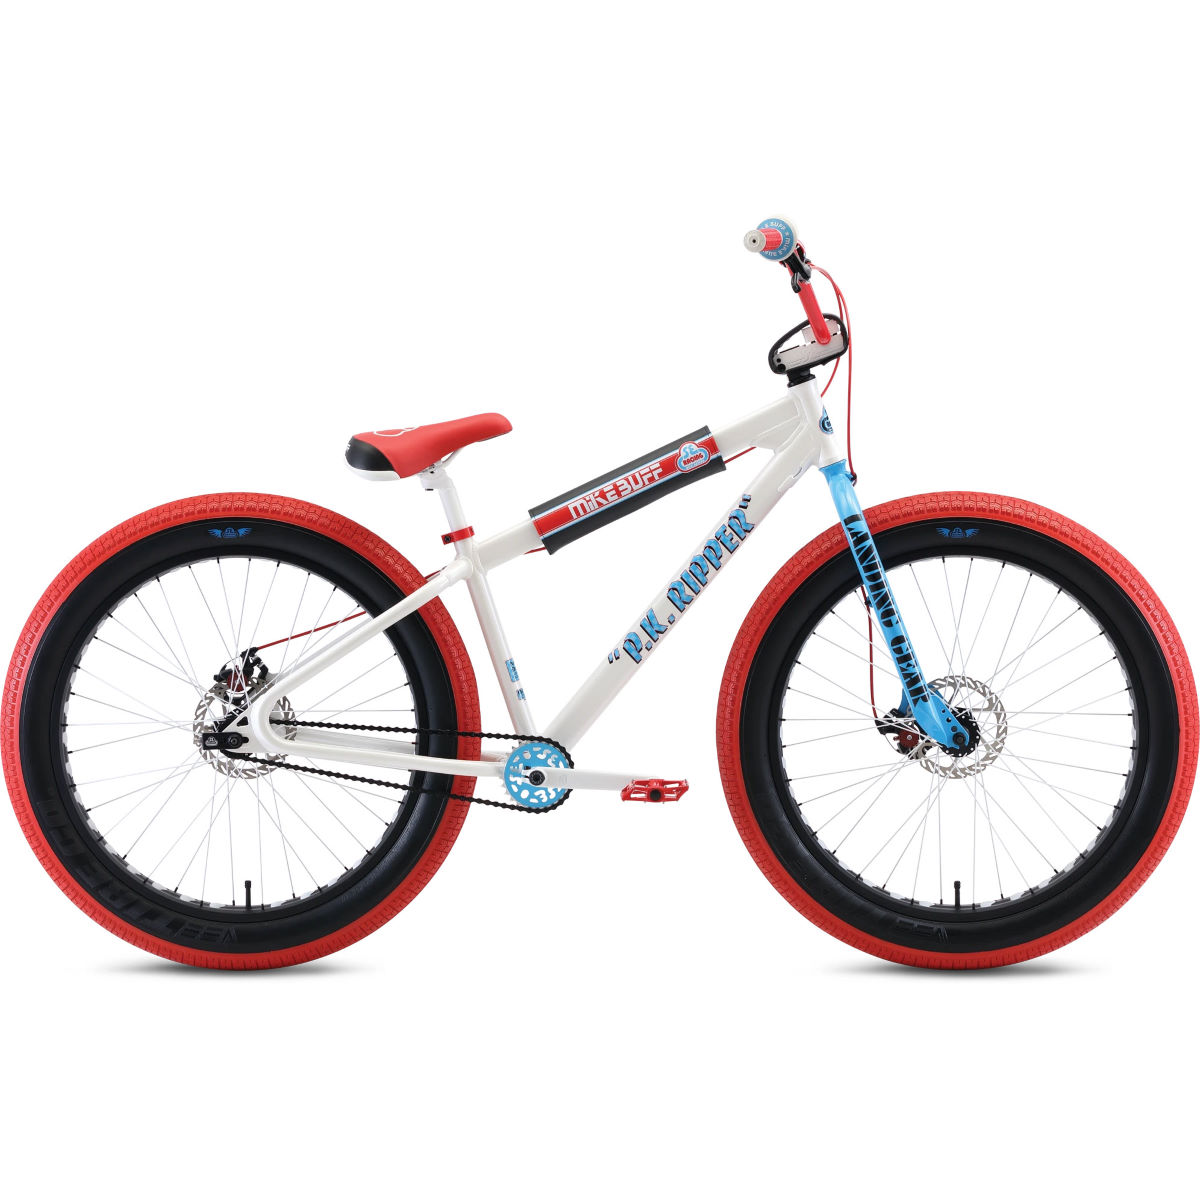 "Image of BMX SE Bikes Mike Buff Fat Ripper 26 - 26"" Arctic White"